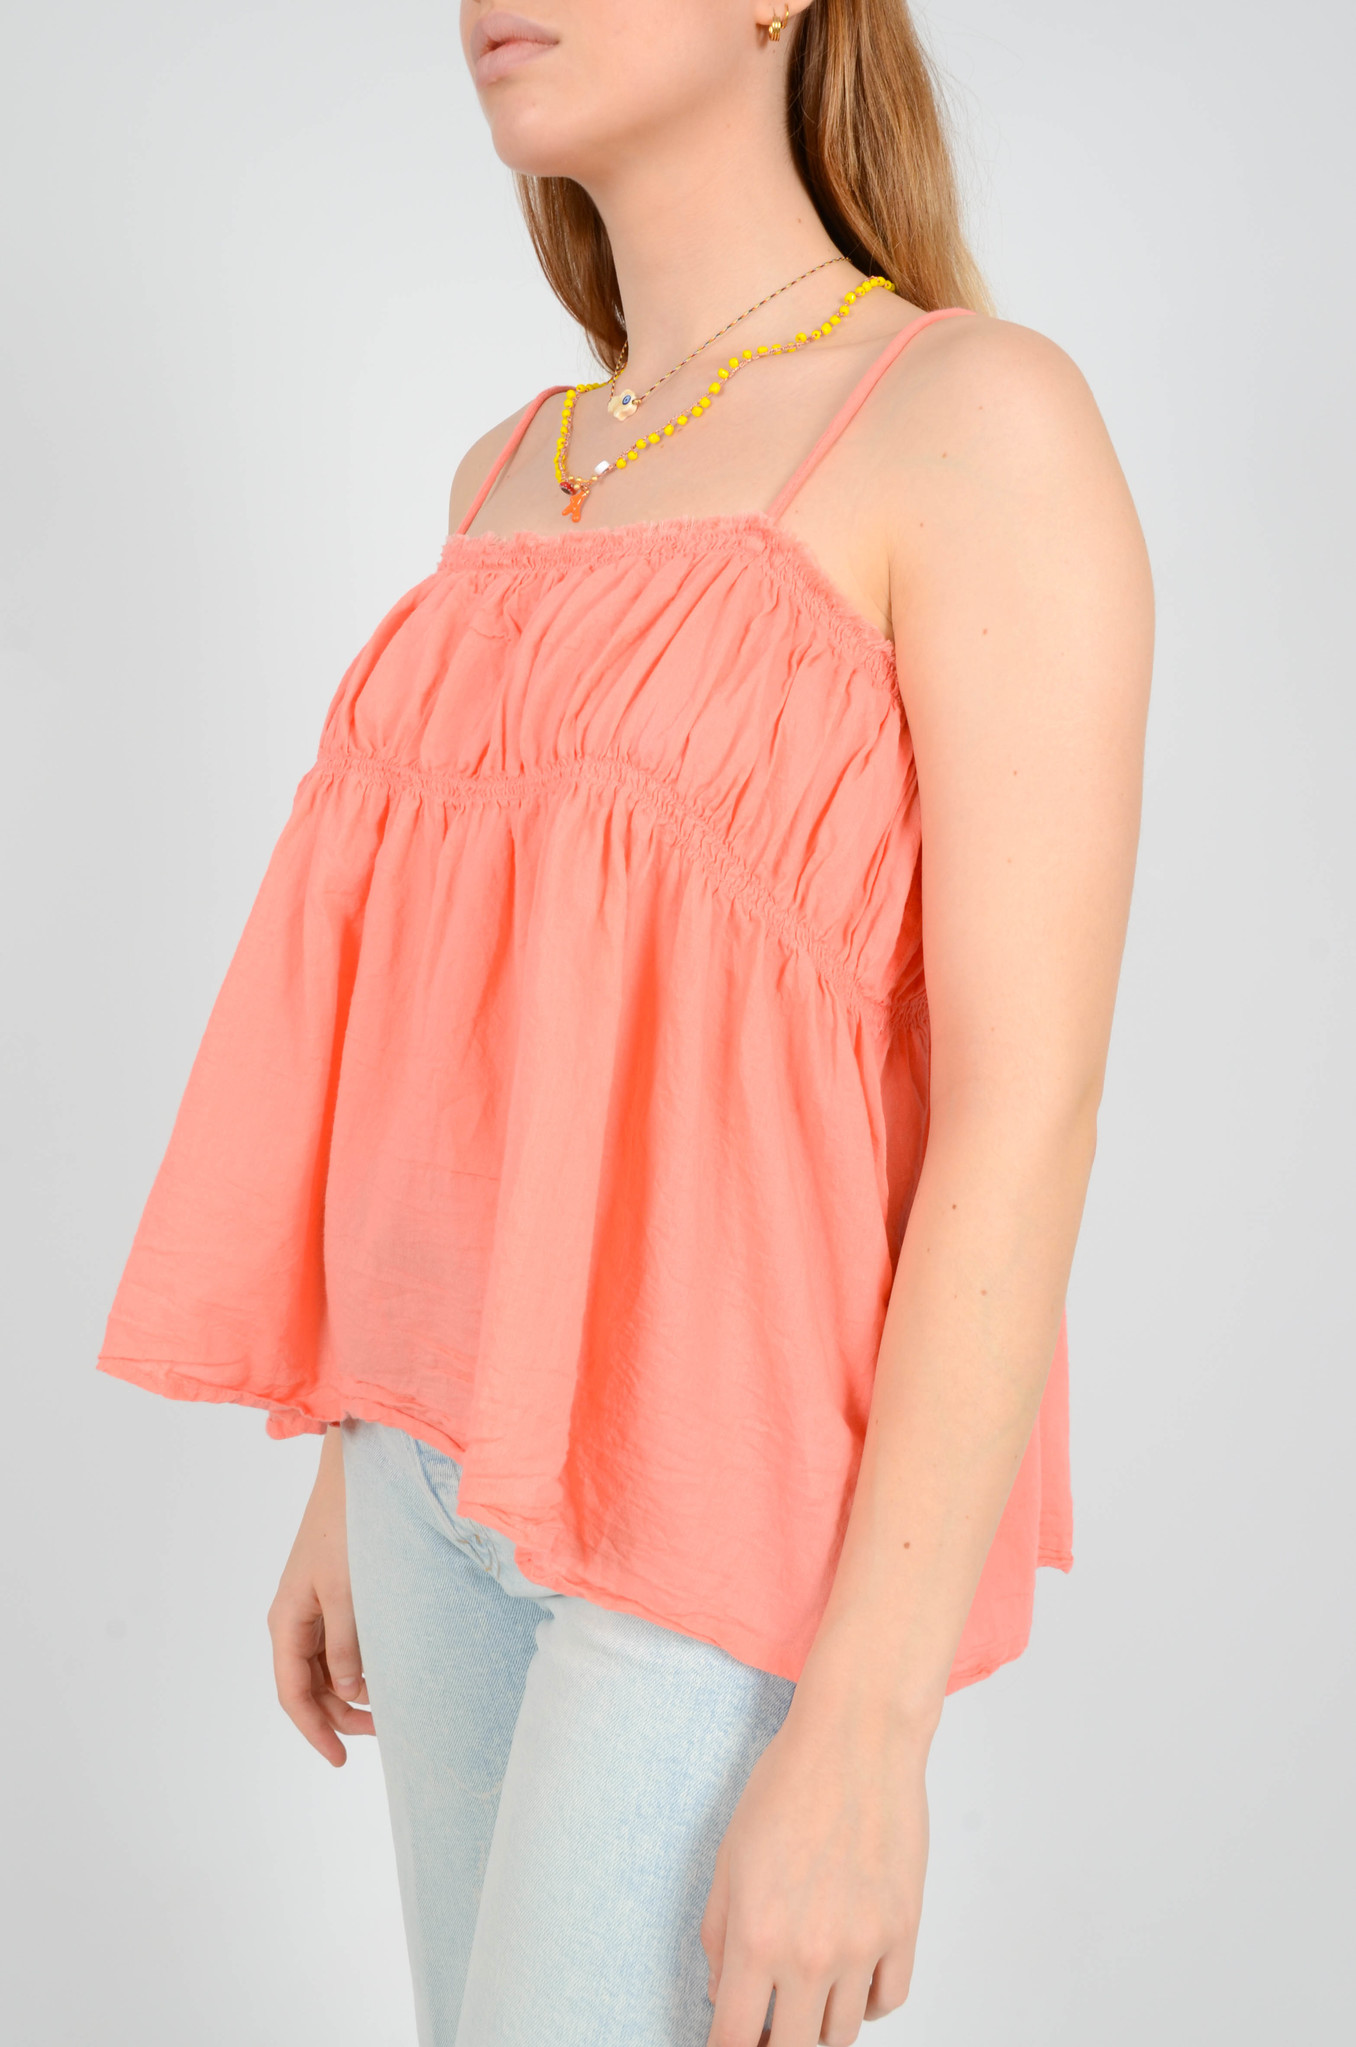 HAILEY TANKTOP IN CORAL-3